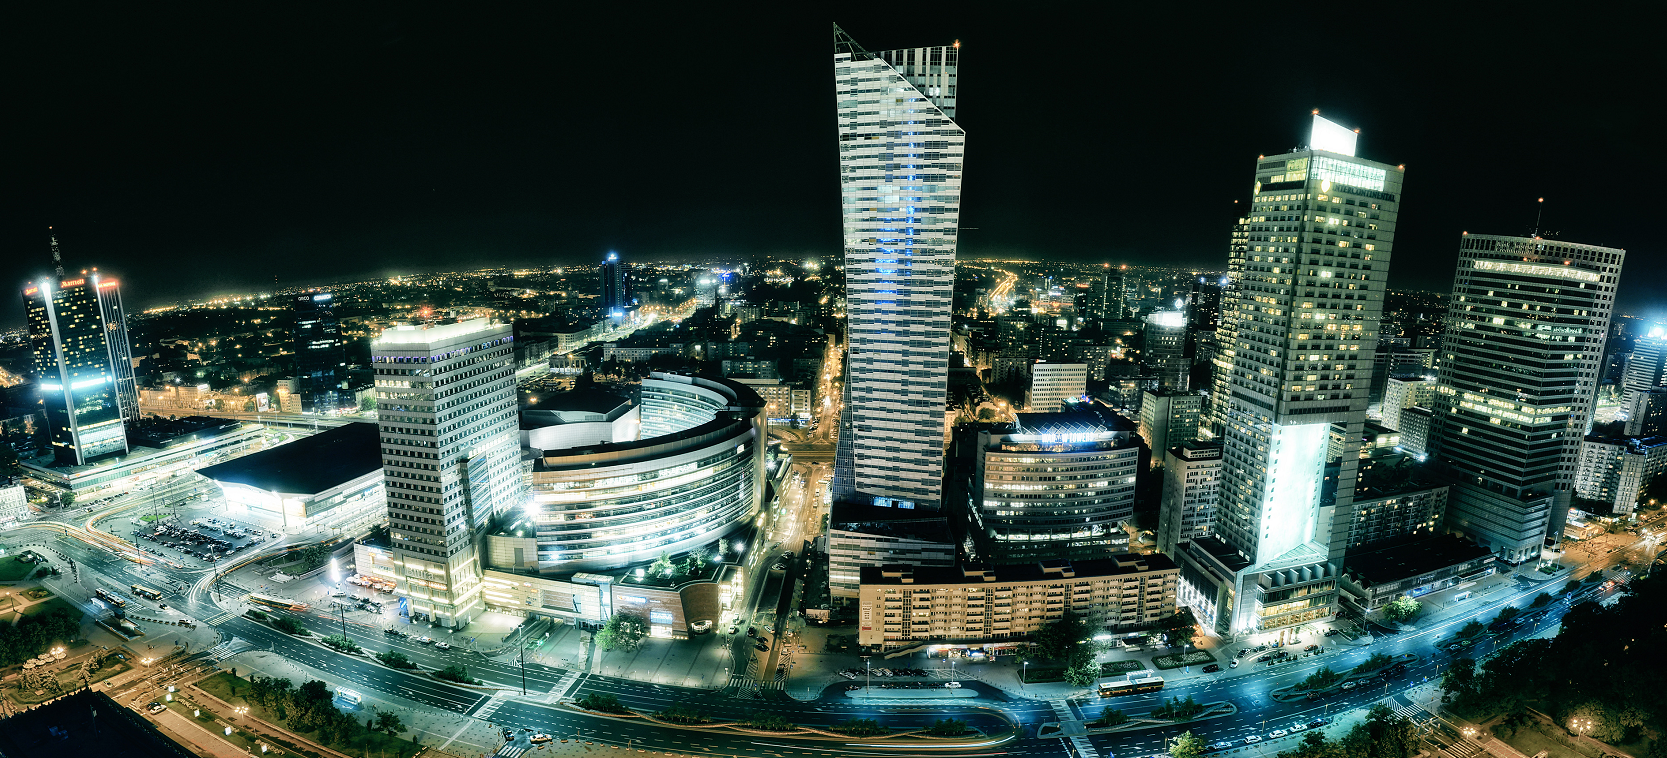 Professional legal help in Poland